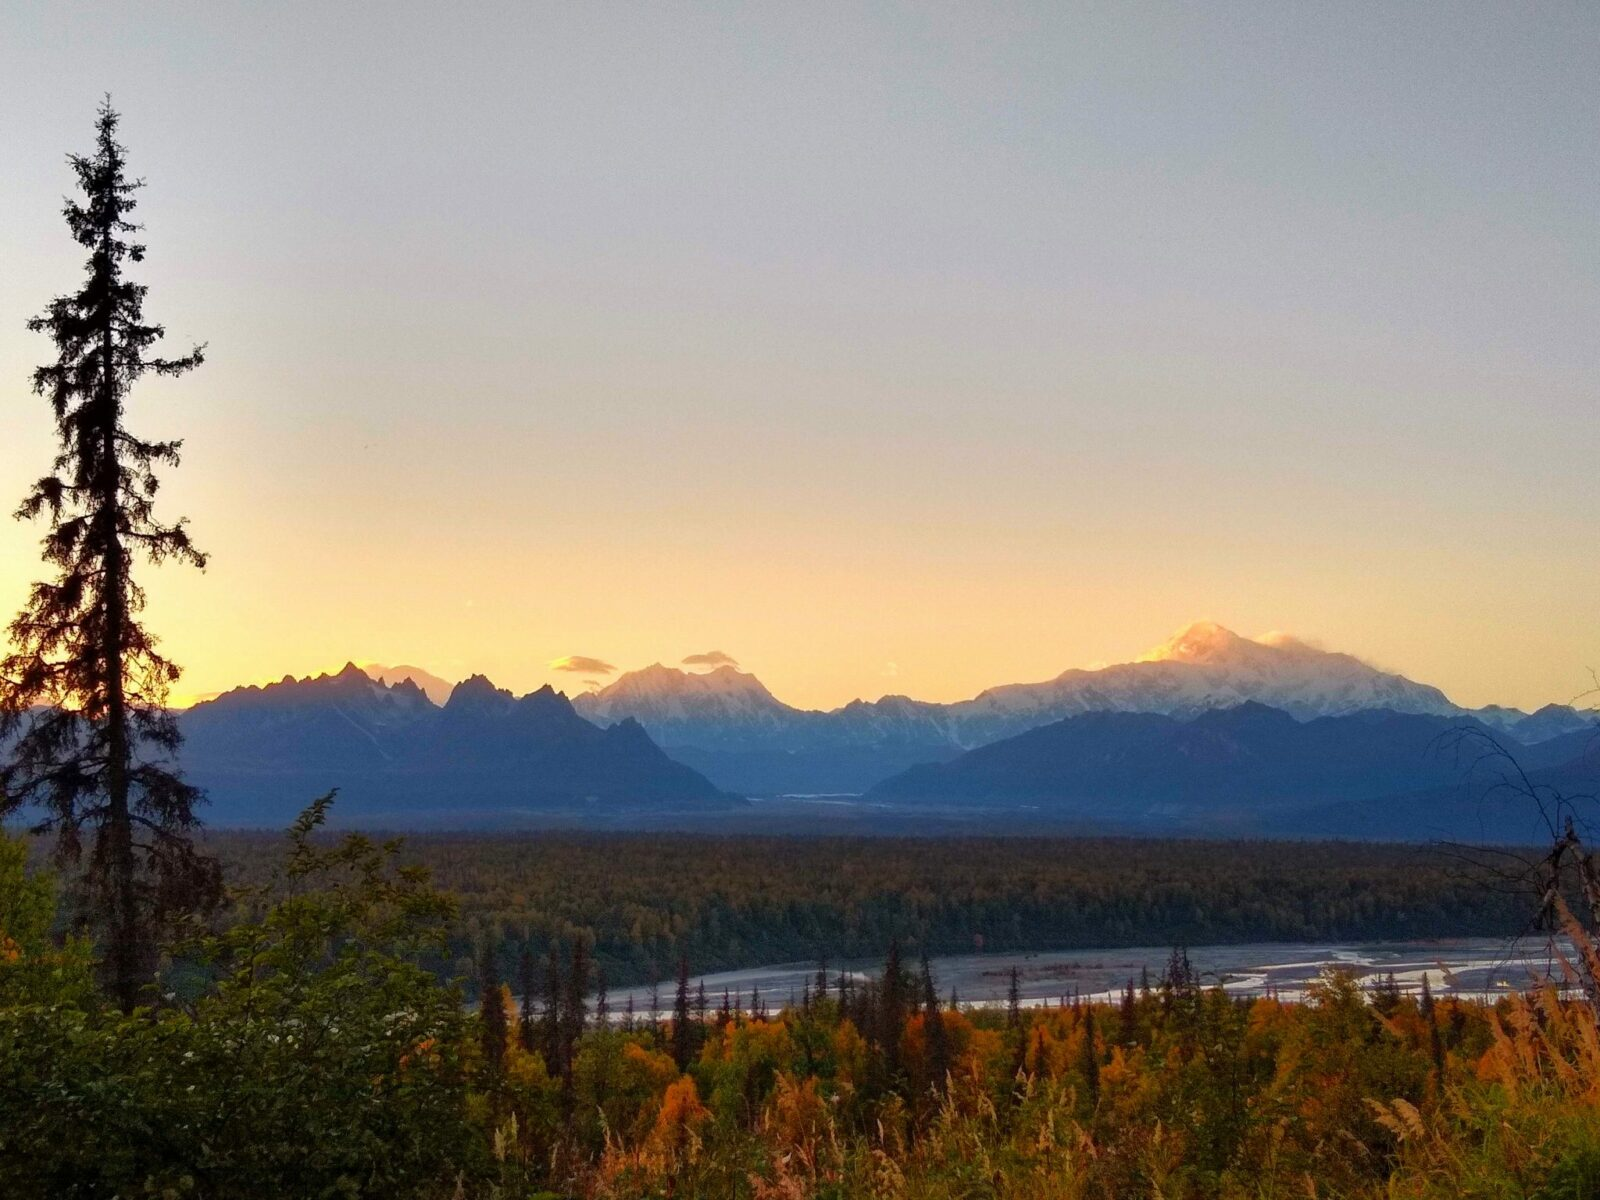 camping in alaska at denali state park with views of denali and other mountains of the alaska range at sunset. The Susitna river is in the distance and evergreen trees and orange fall shrubs are in the foreground